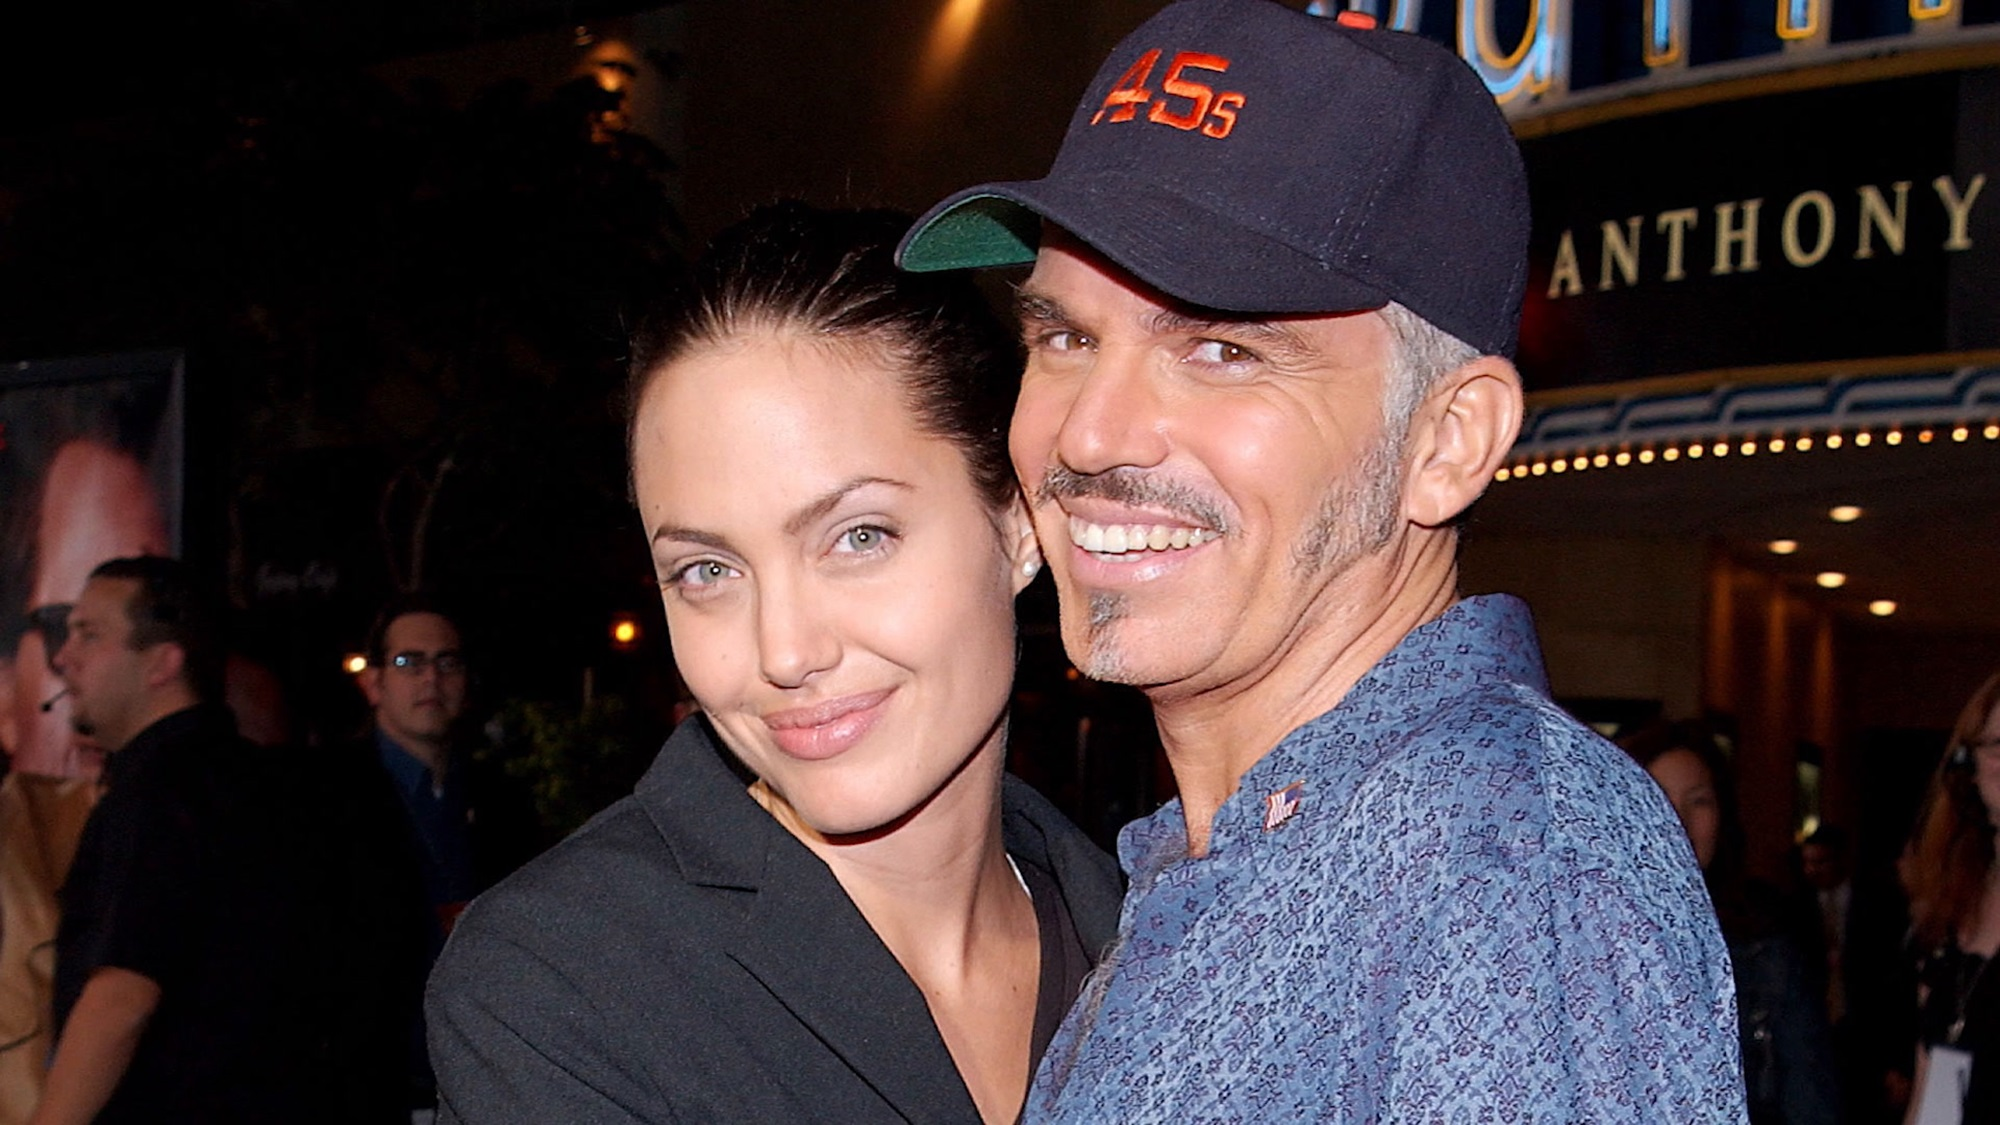 Billy Bob Thornton Tells It All About Angelina Jolie With